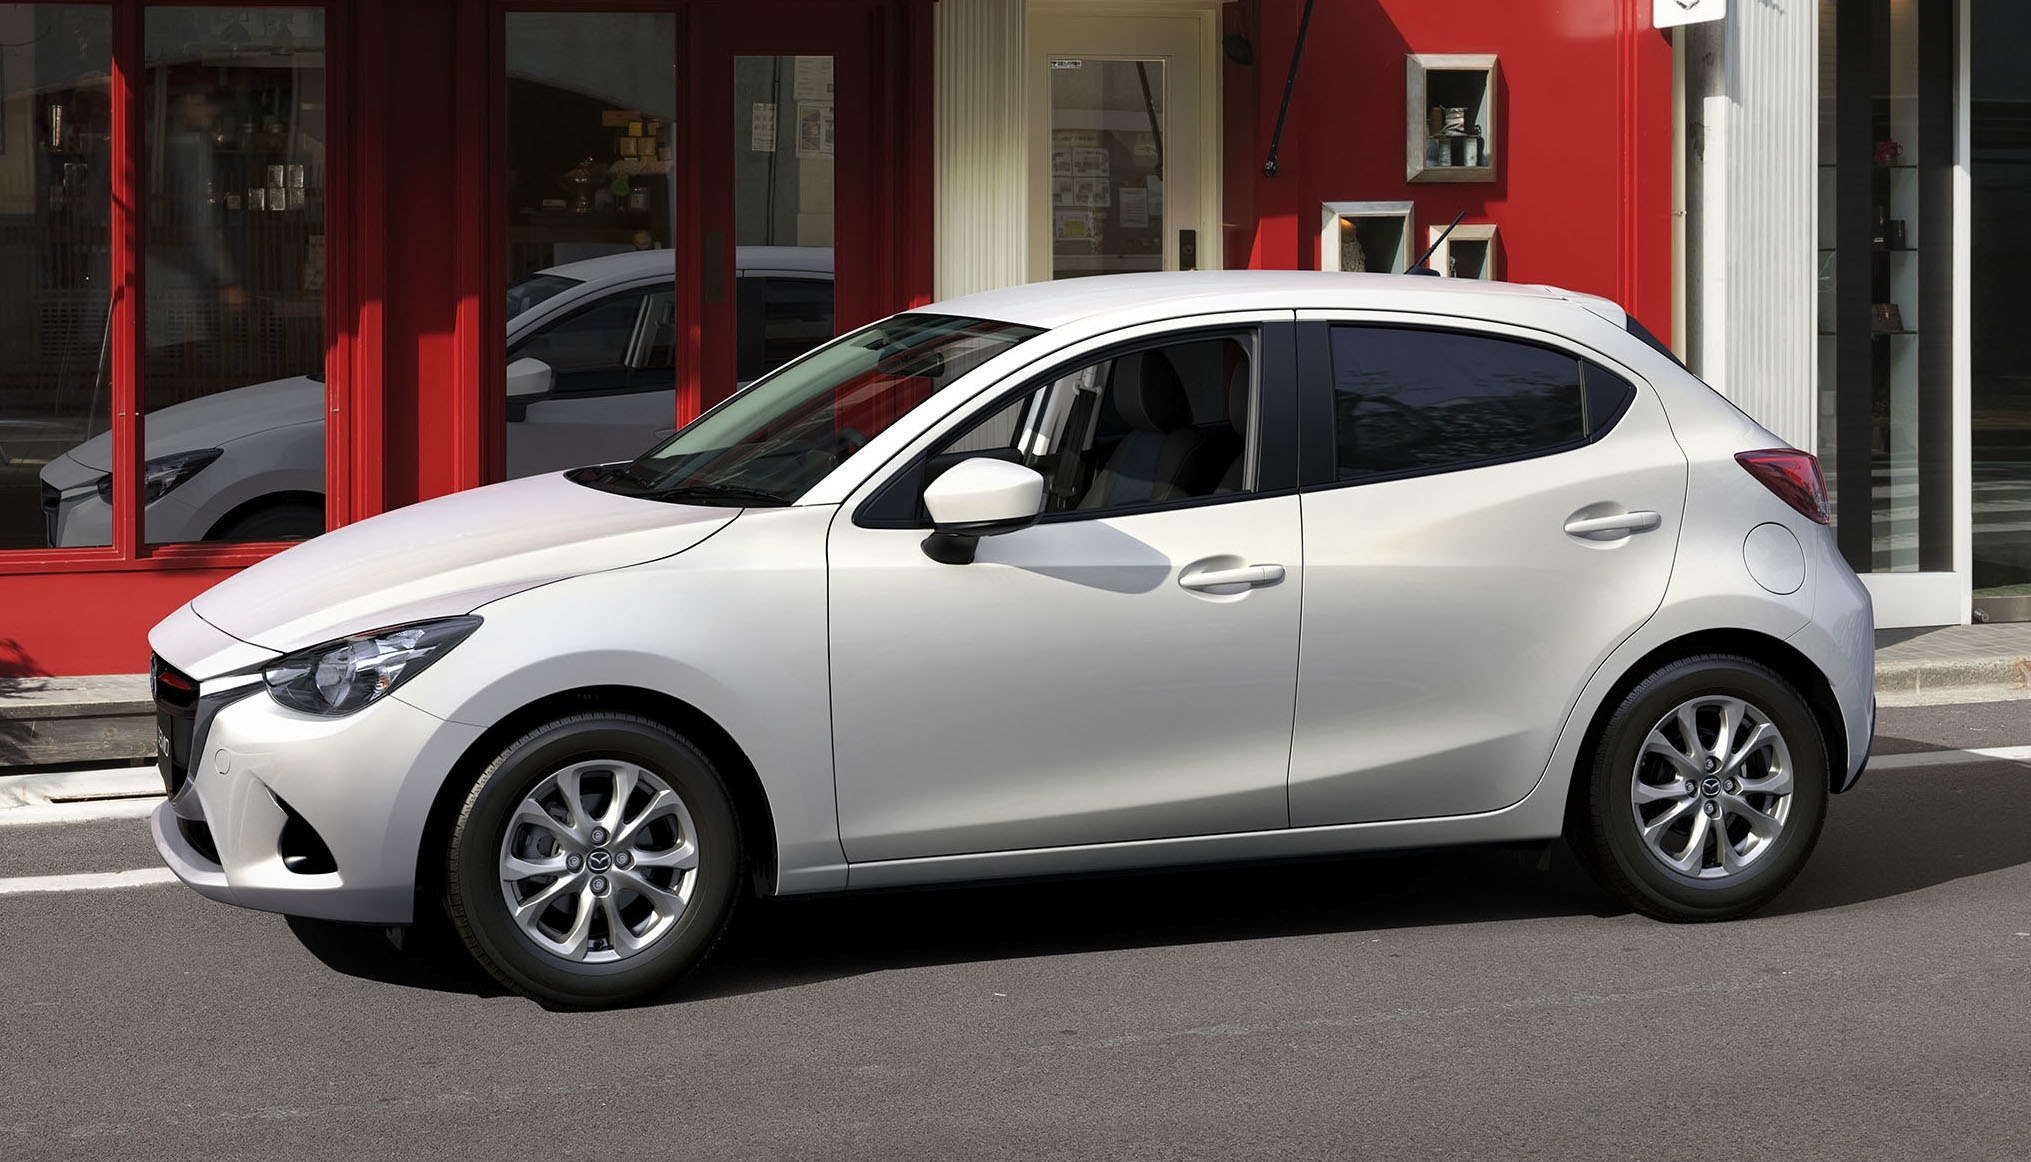 2015 mazda 2 breaks cover, very hazumi-like! image 259327